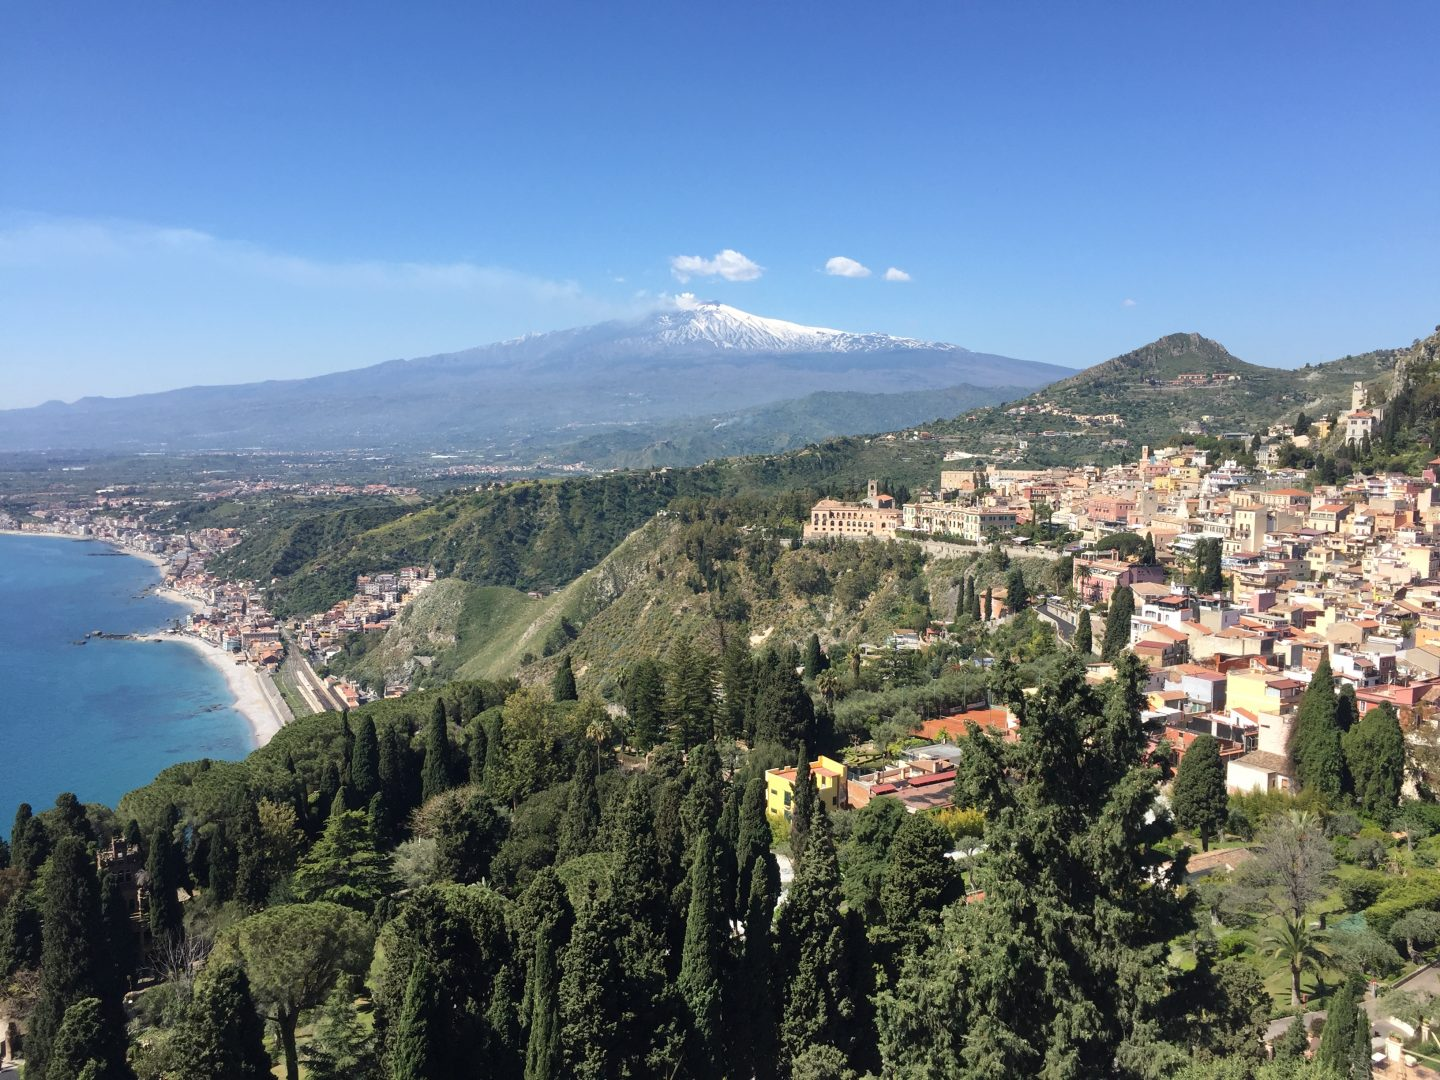 View from Taormina beaches of Sicily